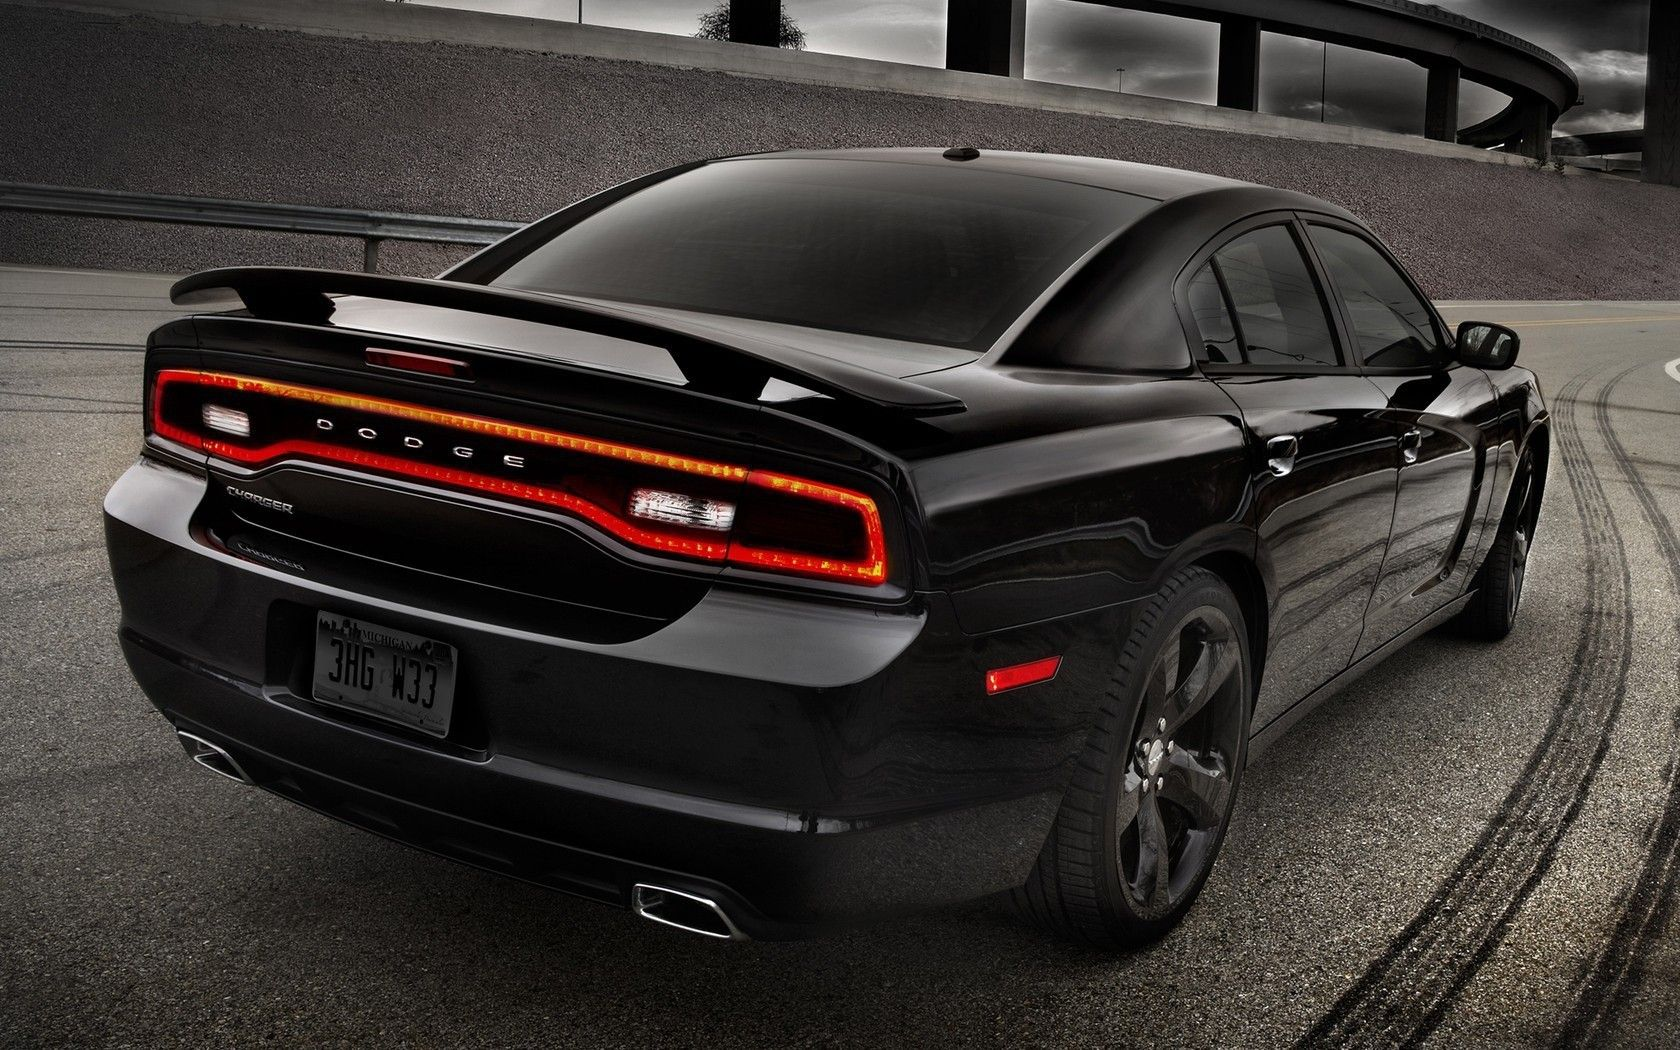 Cars Vehicles Dodge Charger Rear View Wallpaper In 2020 Dodge Charger 2012 Dodge Charger Black Dodge Charger